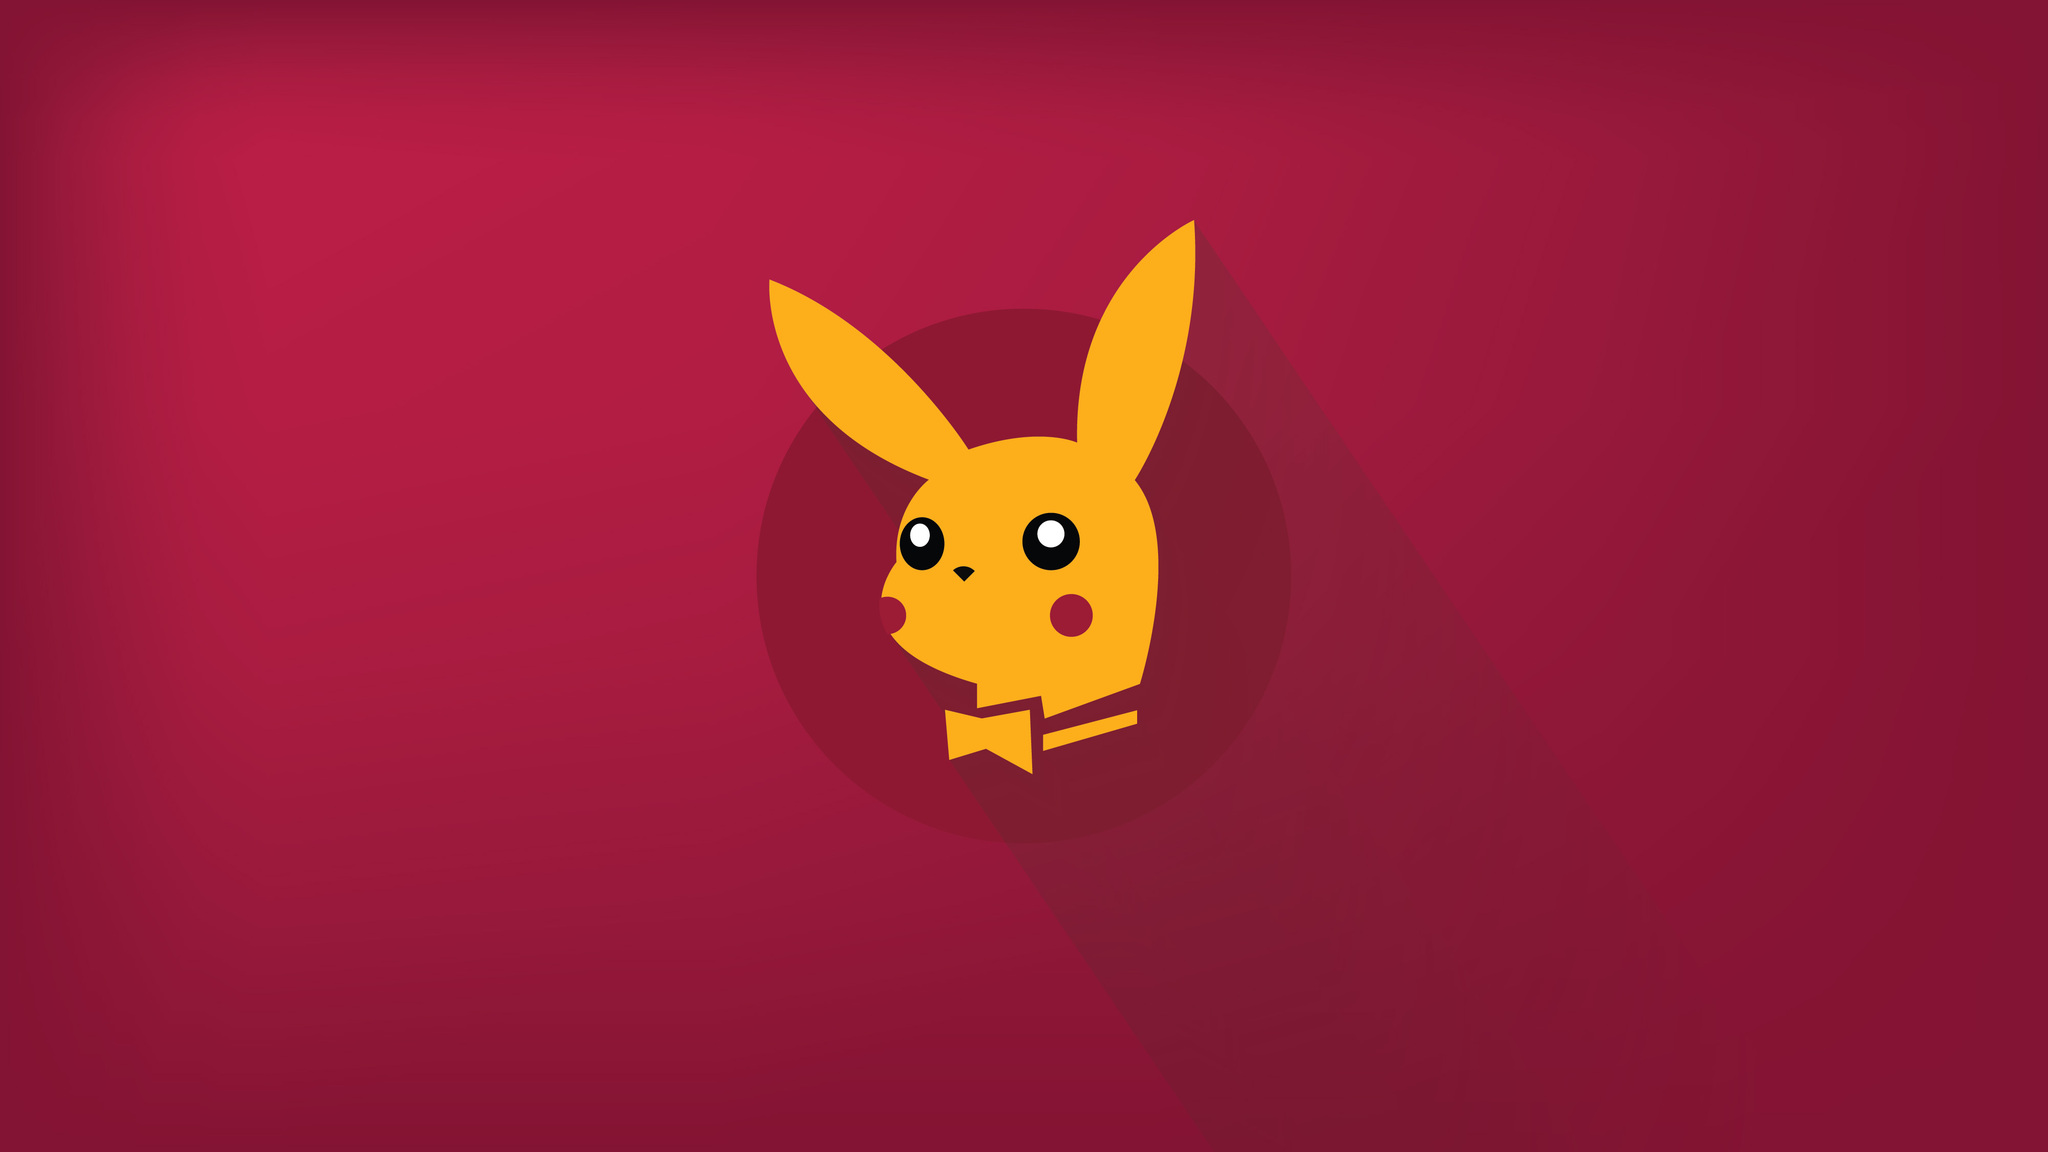 2048x1152 Pikachu 2048x1152 Resolution Hd 4k Wallpapers Images